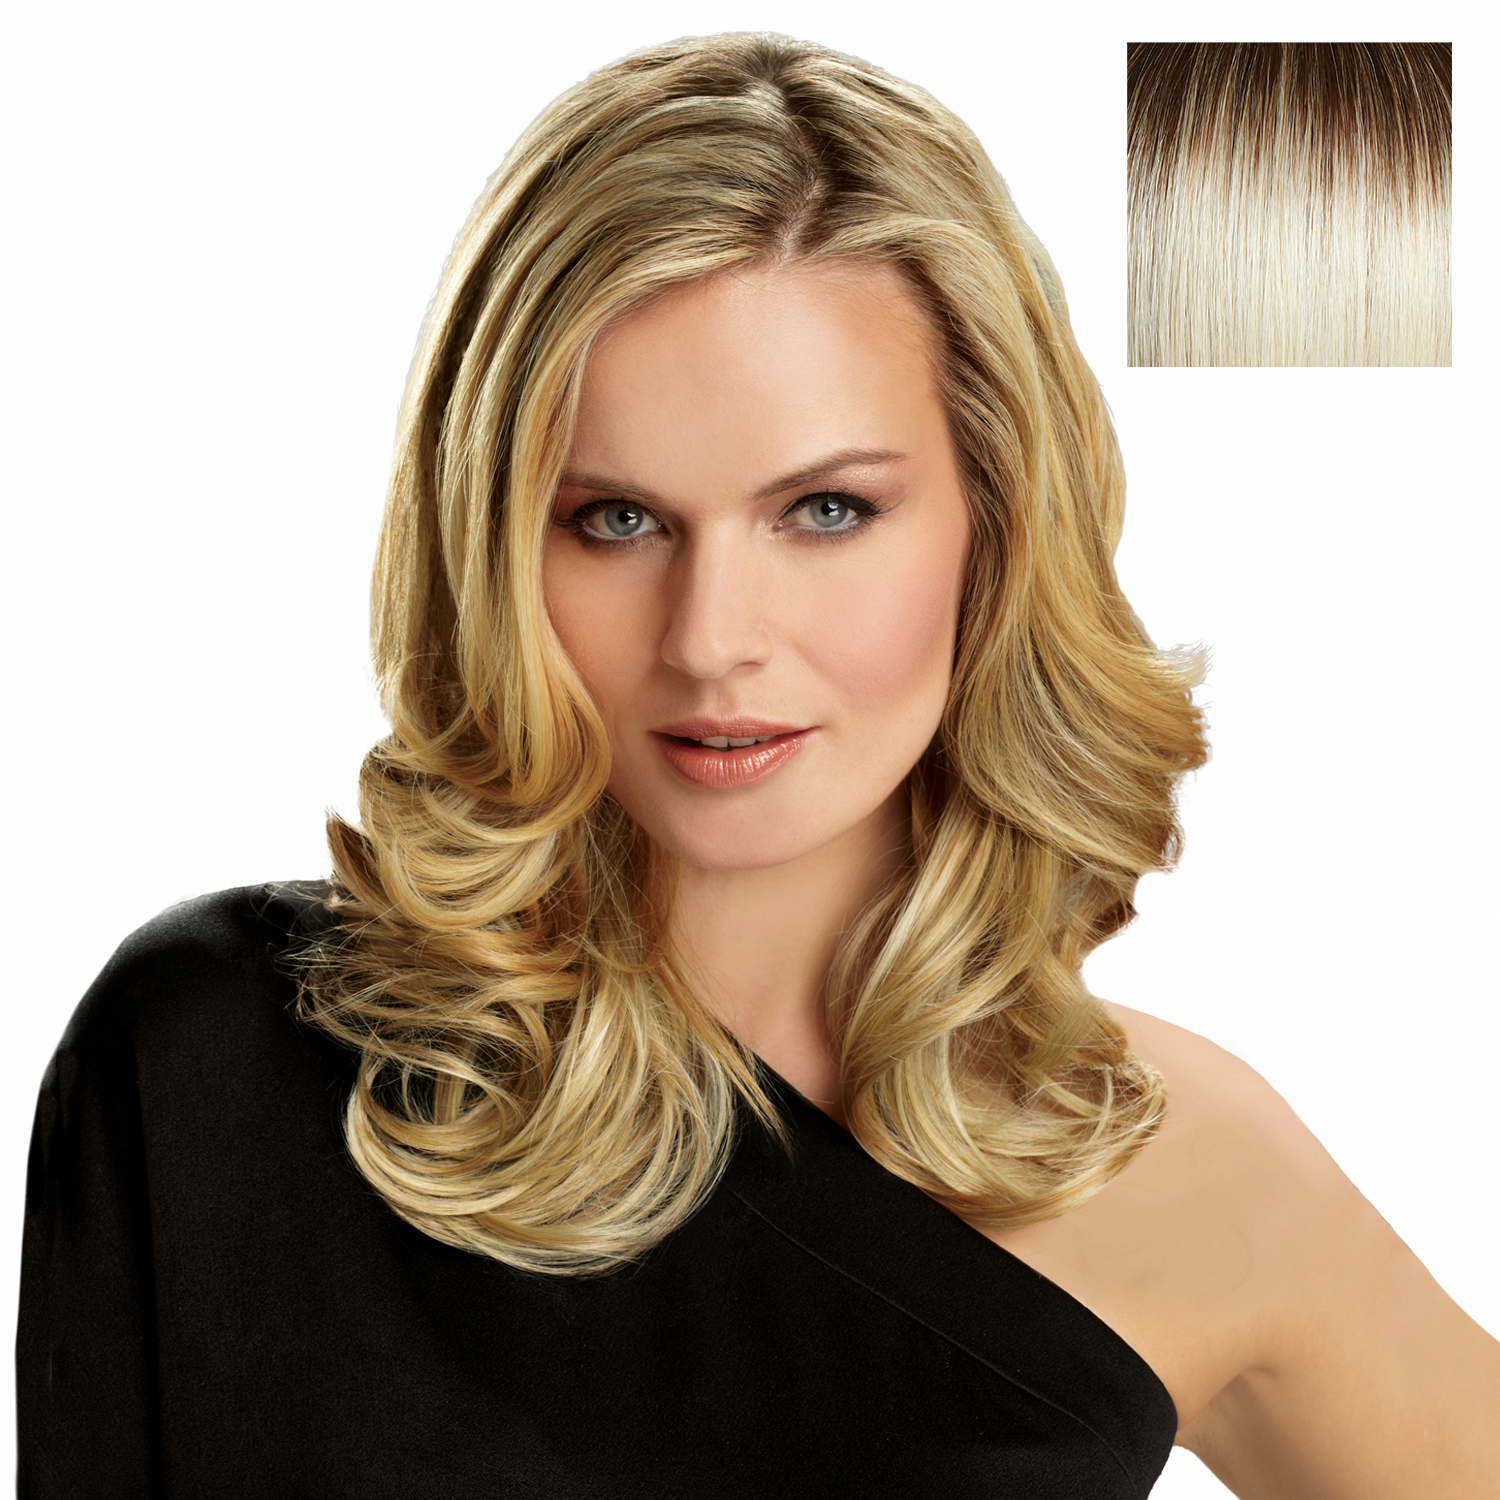 Hairdo 20 Inch Invisible Extension Ss Alabaster | Synthetic Hair Extensions